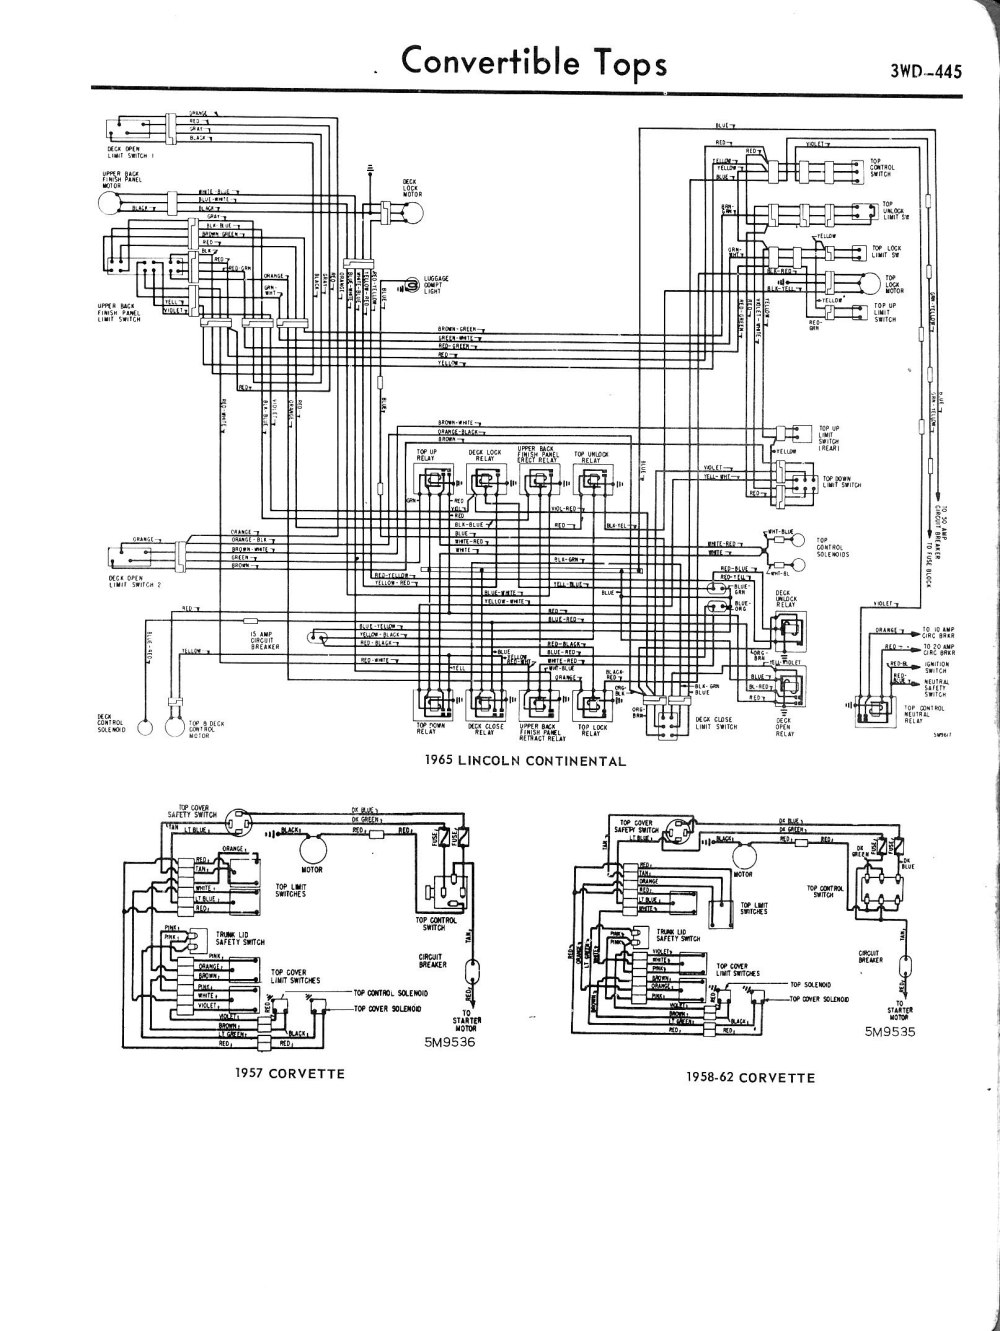 medium resolution of 1957 chevy wiring harness diagram wiring diagram for you 1957 chevy wagon wiring harness wiring diagram